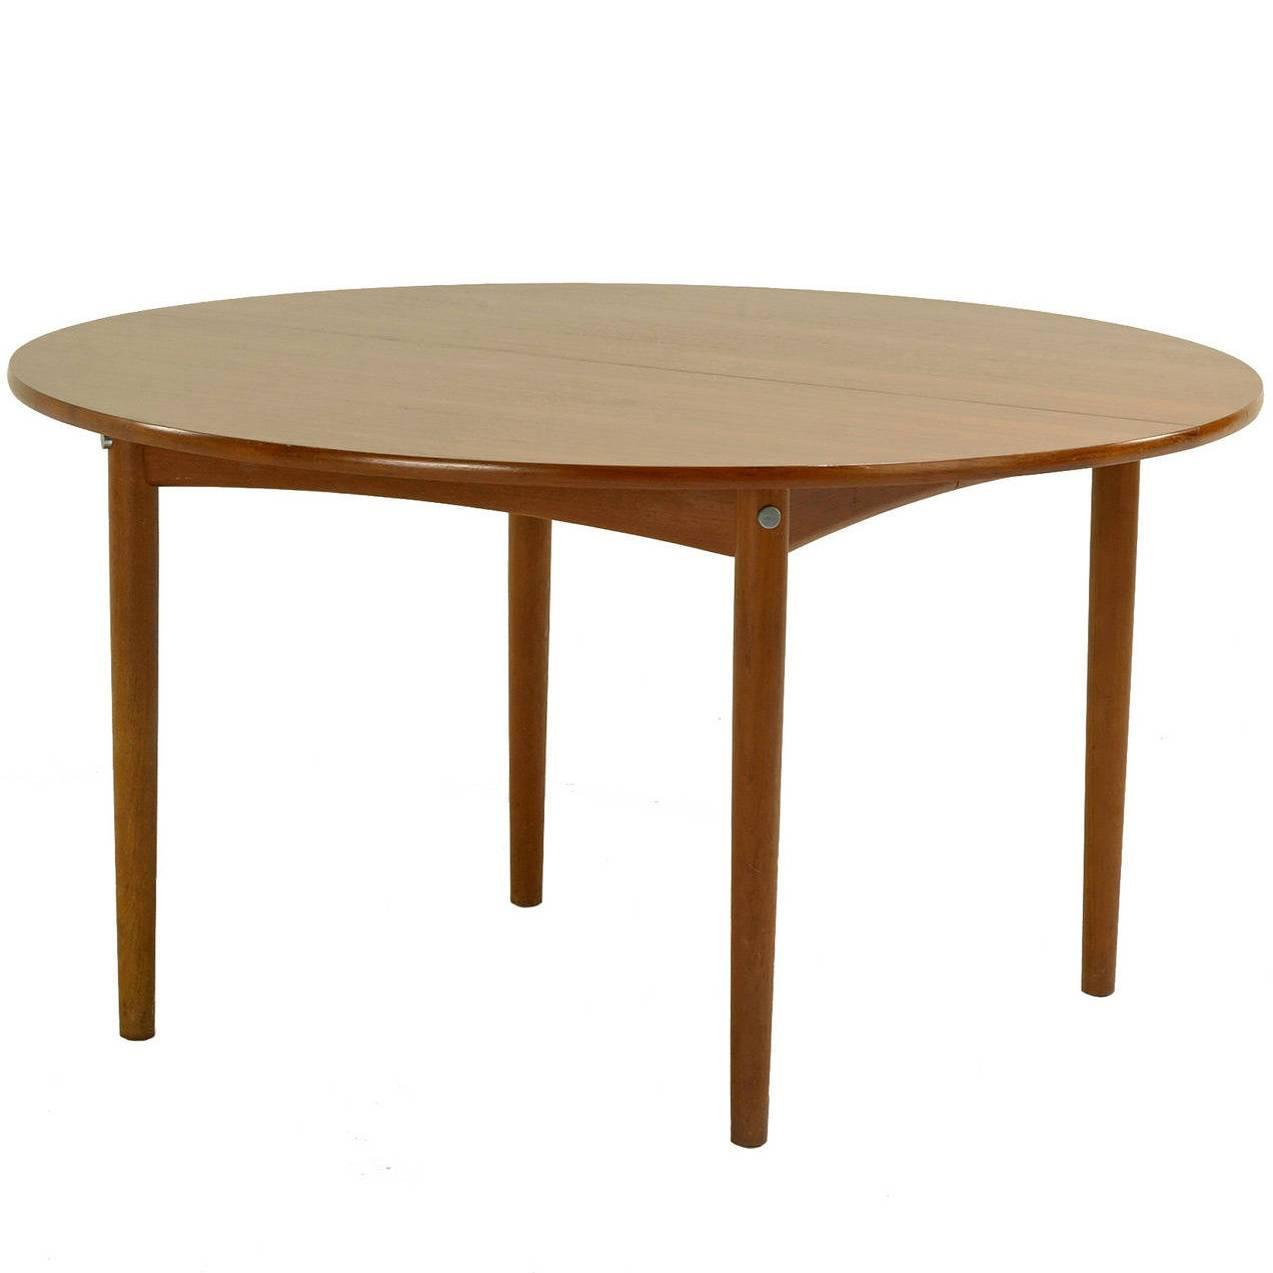 Rare Hans Wegner Round Dining Table For Sale at 1stdibs